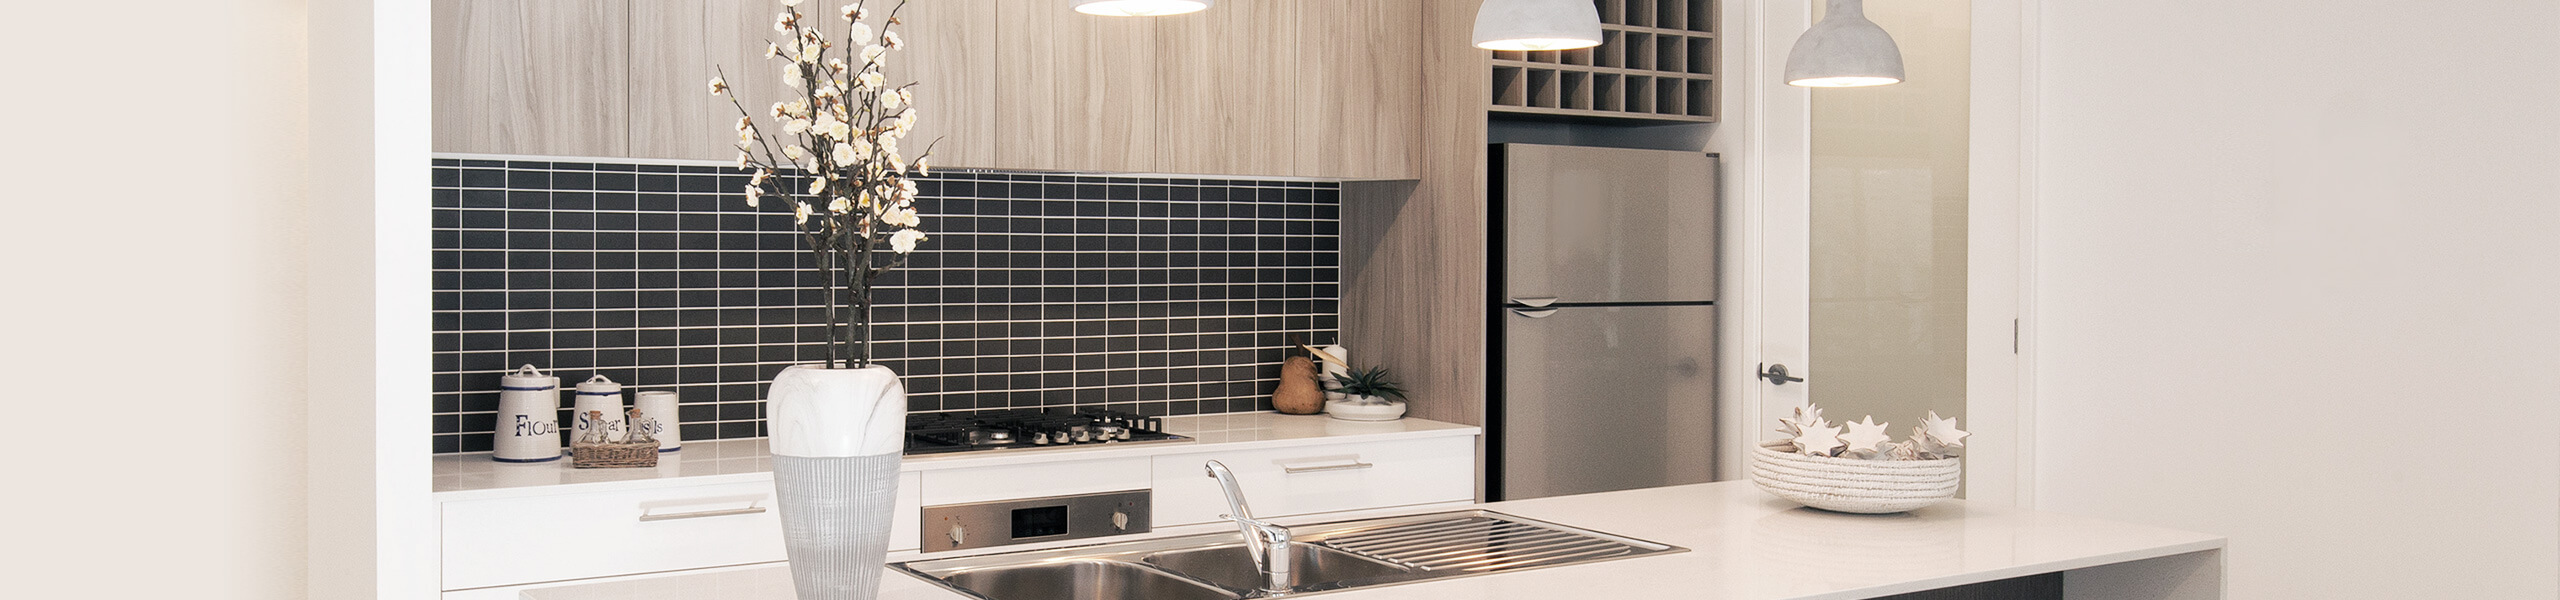 Design One Of The Most Experienced Interior Designers Kitchen Design Sydney  Inner West